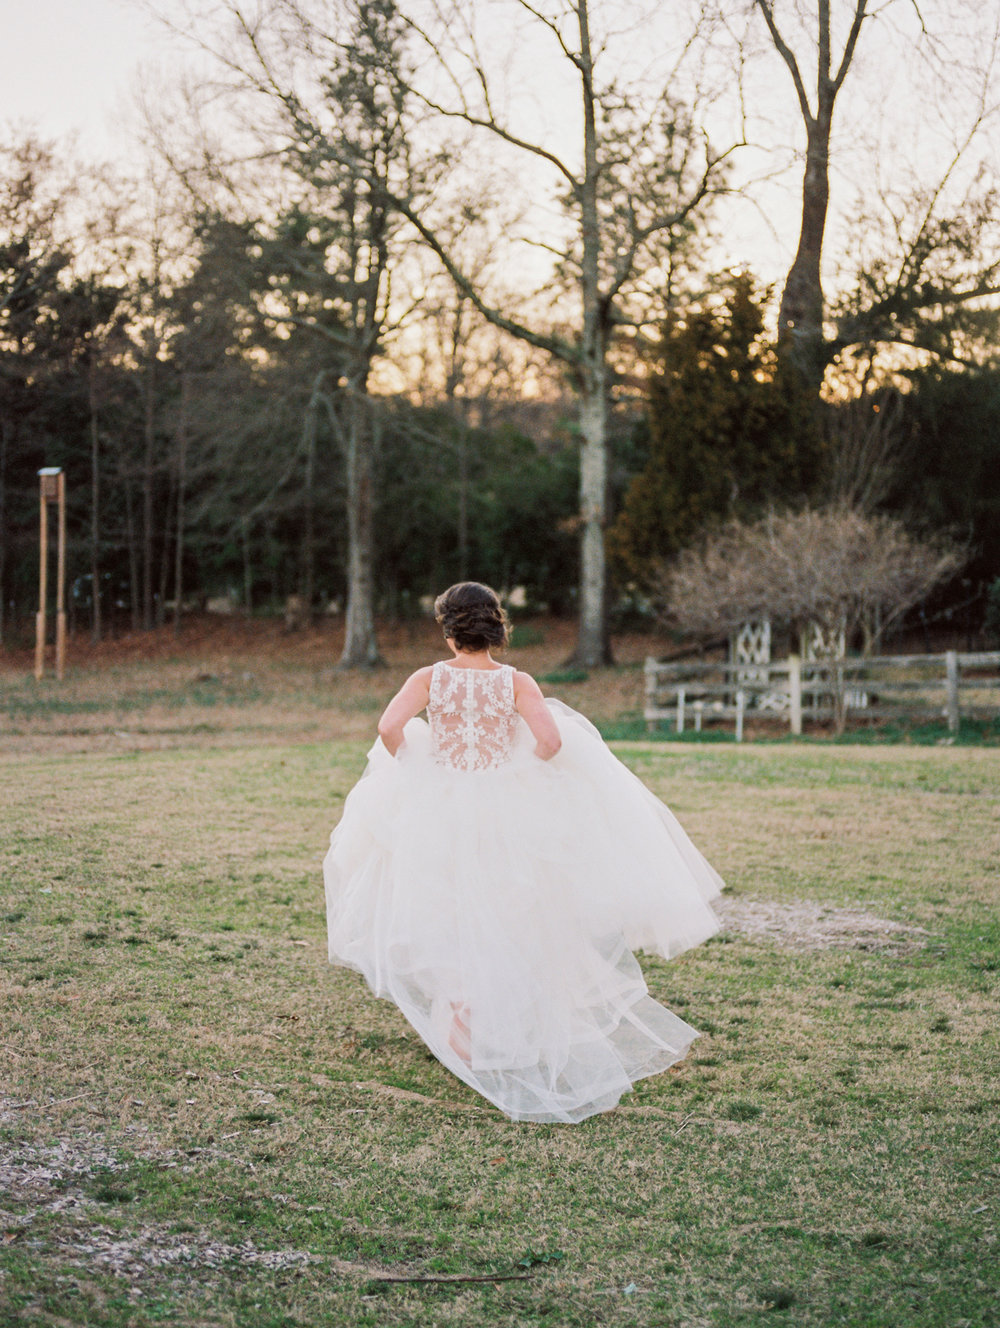 Germantown Farm Park Styled Shoot - Memphis,Tn - Kaitlyn Stoddard-Carter (11 of 2).jpg